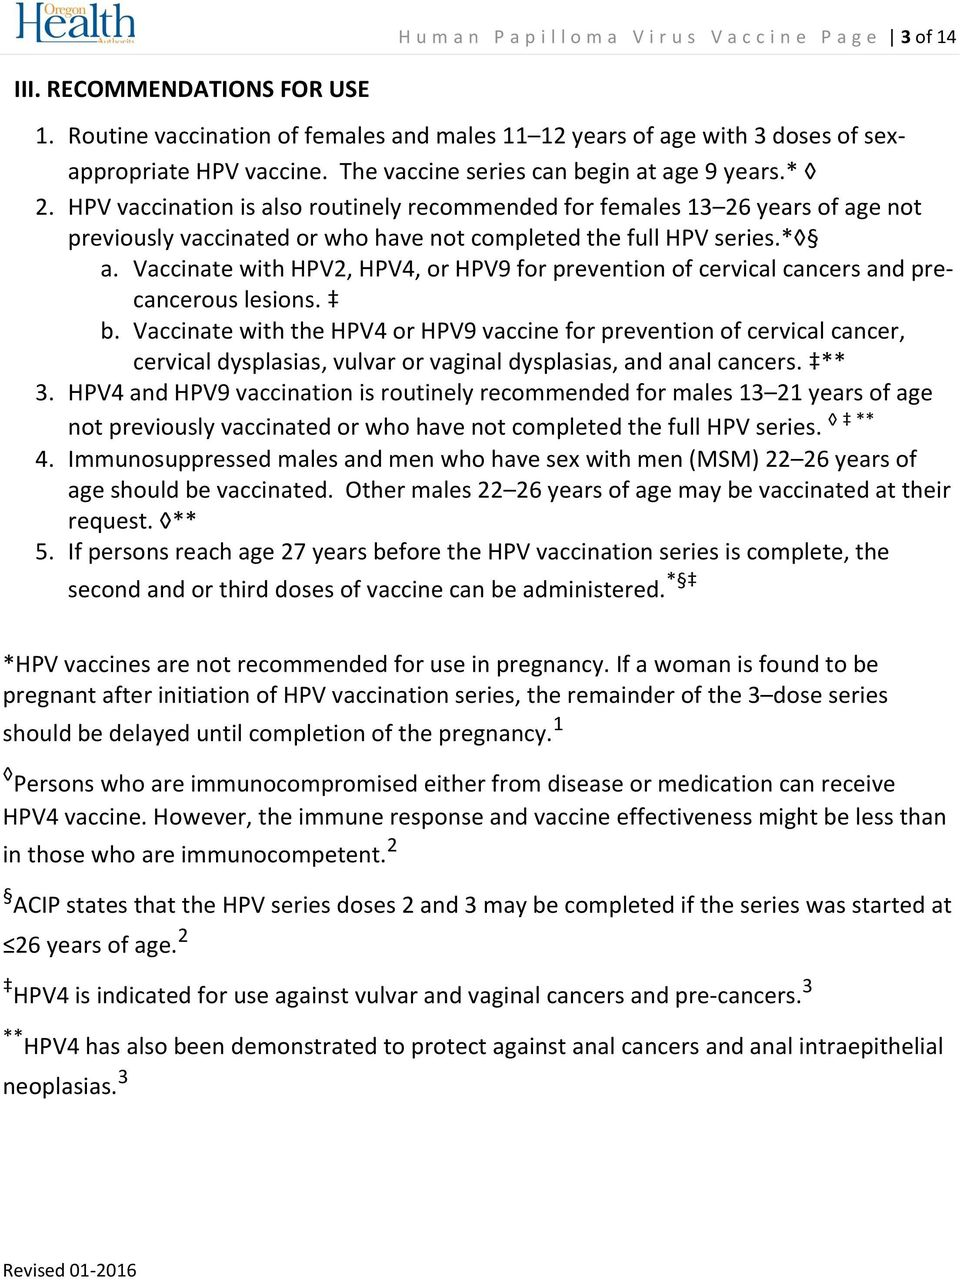 HPV vaccination is also routinely recommended for females 13 26 years of age not previously vaccinated or who have not completed the full HPV series.* a.